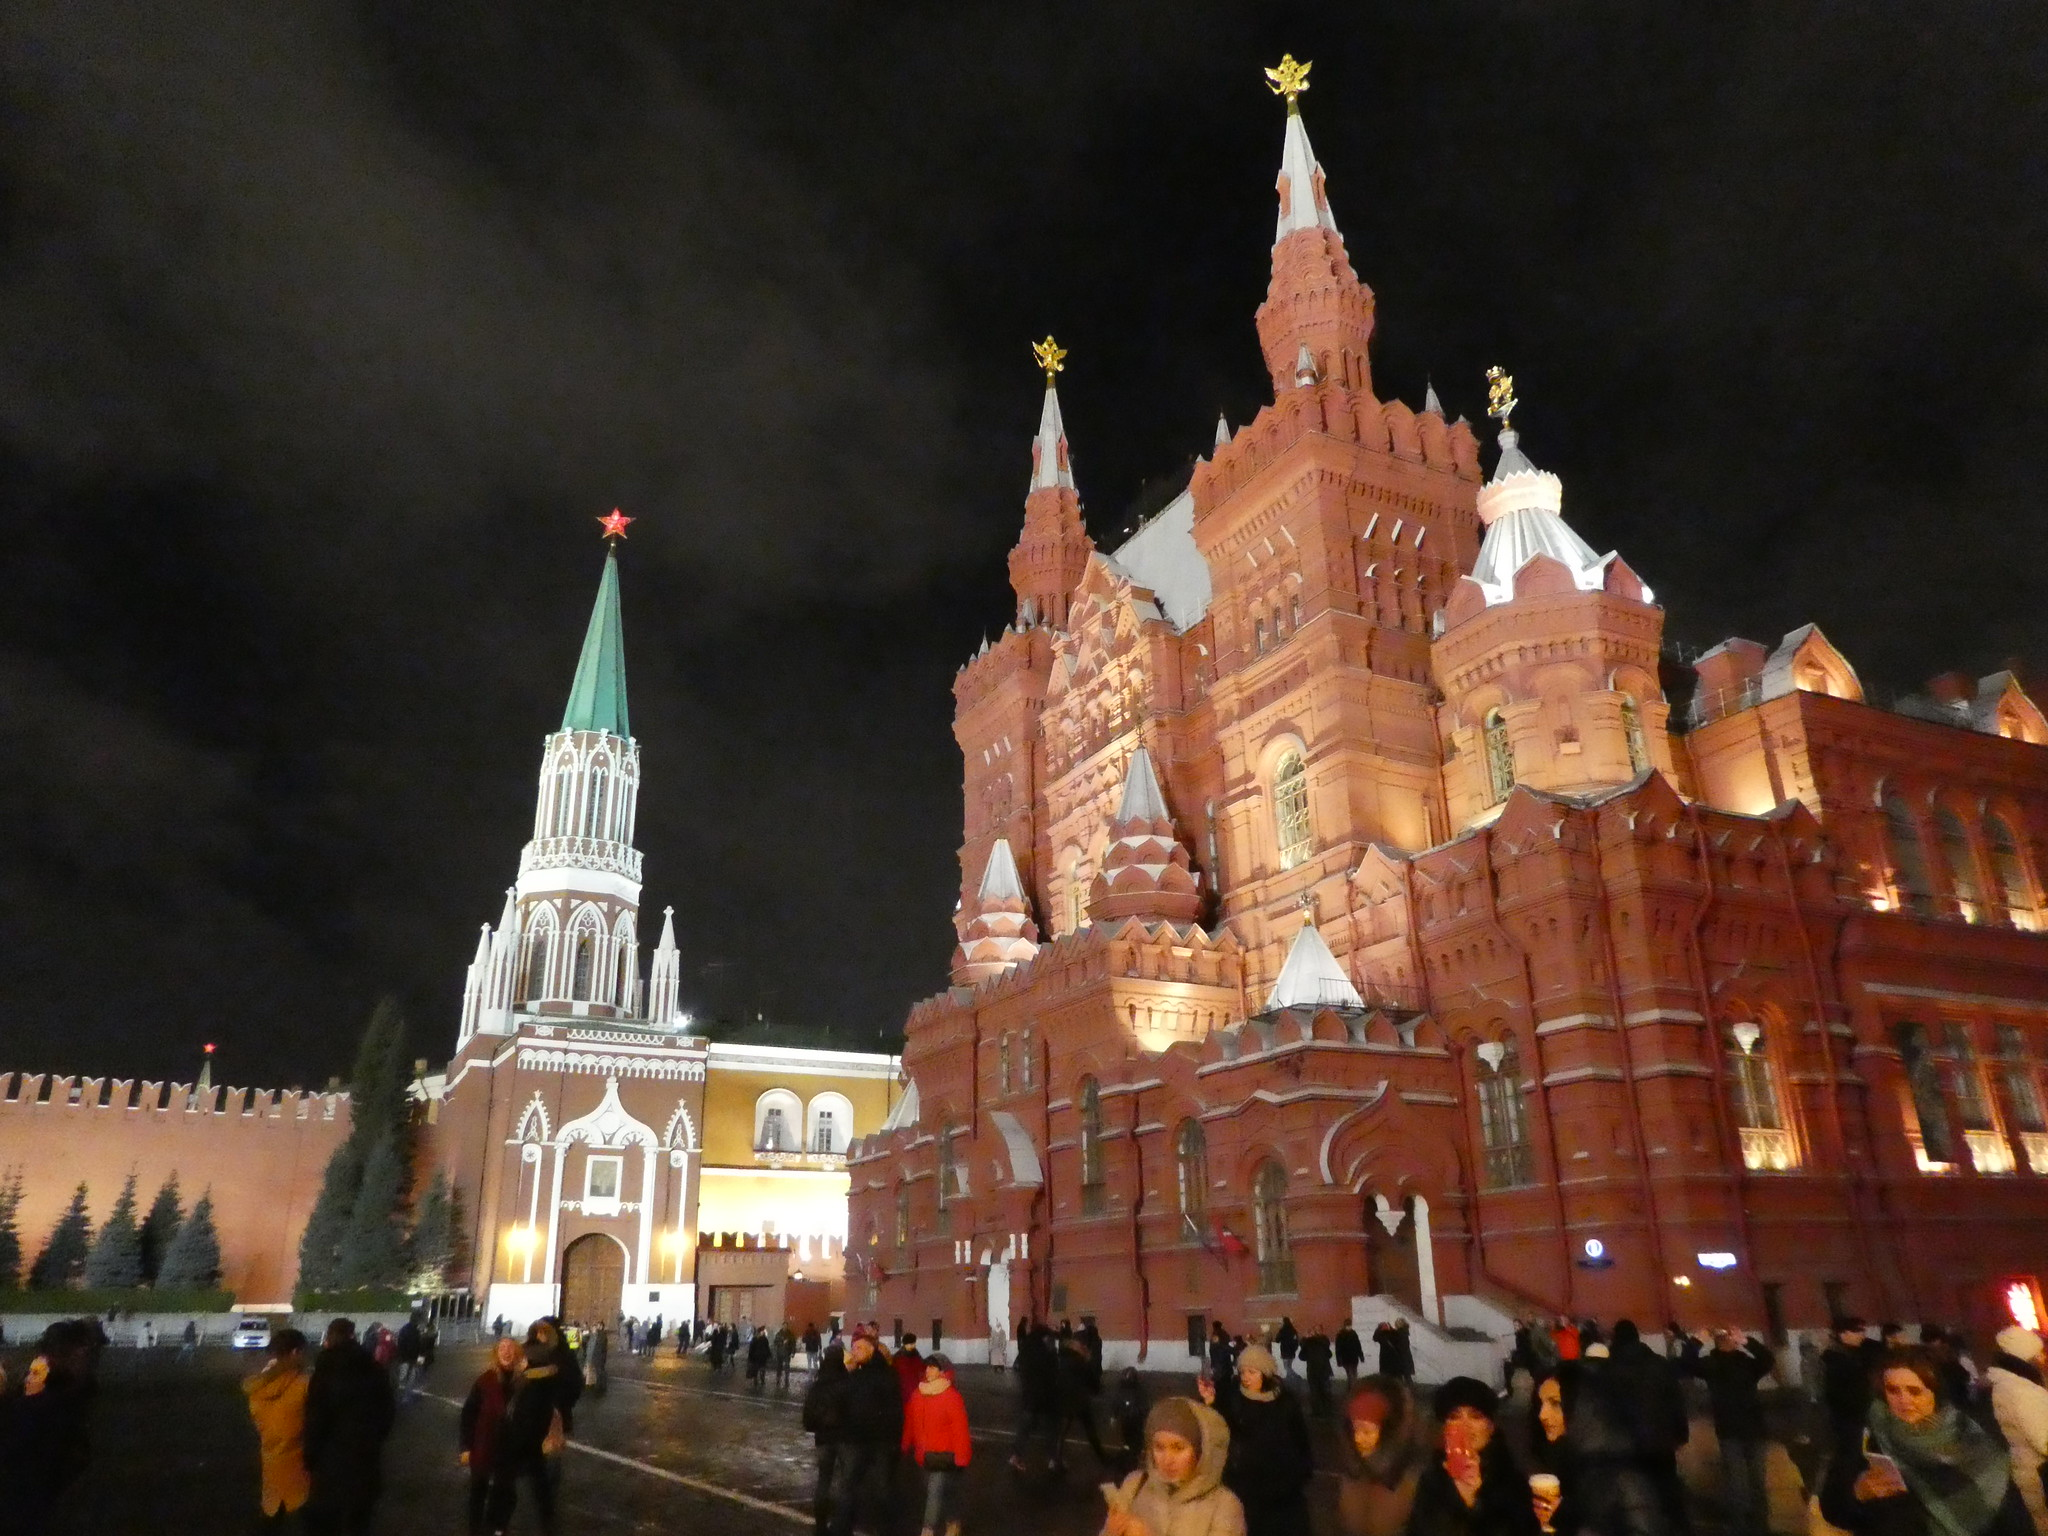 Red Square, Moscow lit up at night